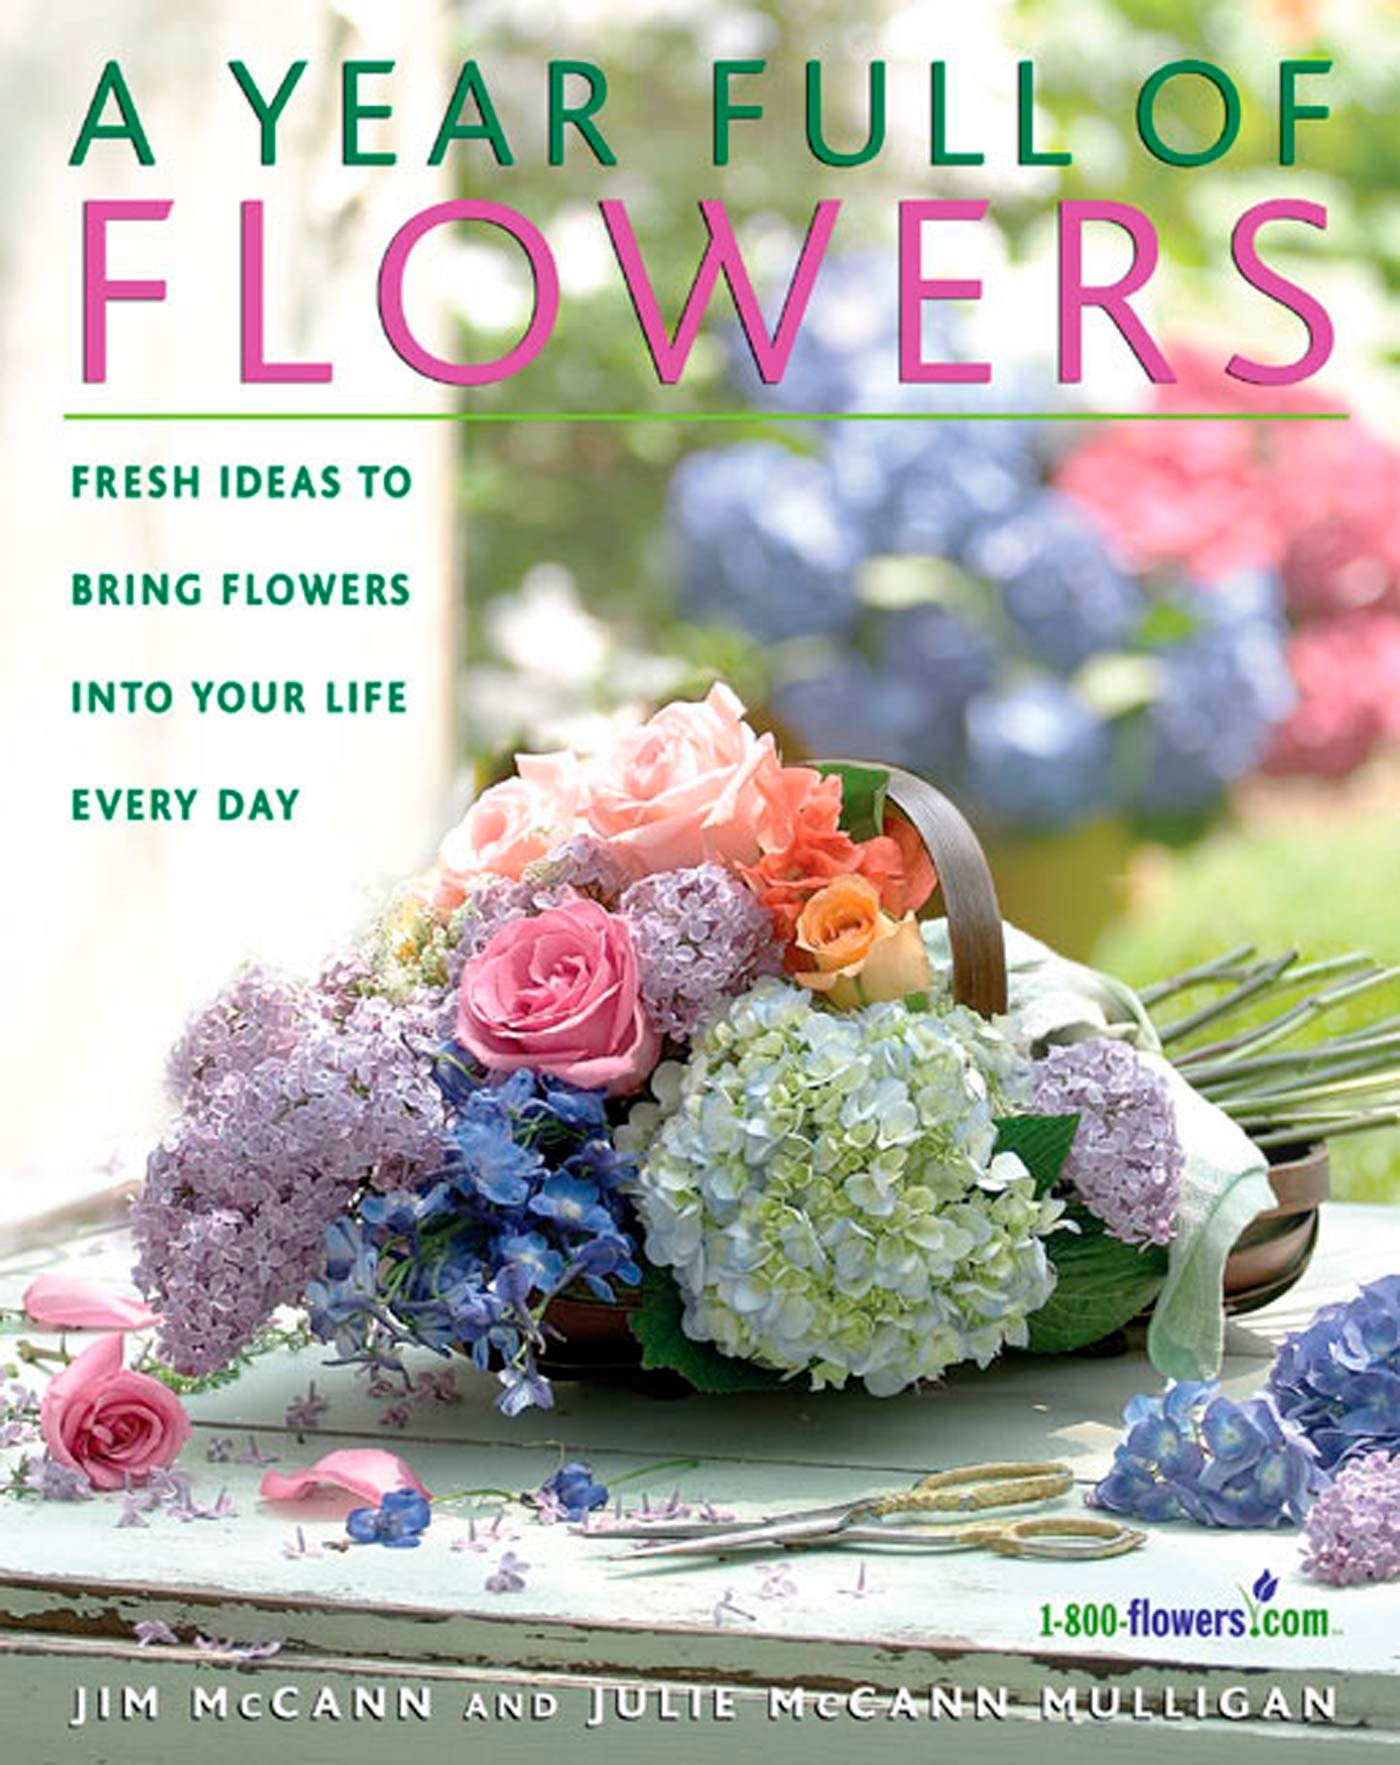 A Year Full of Flowers: Fresh Ideas to Bring Flowers Into Your Life Everyday